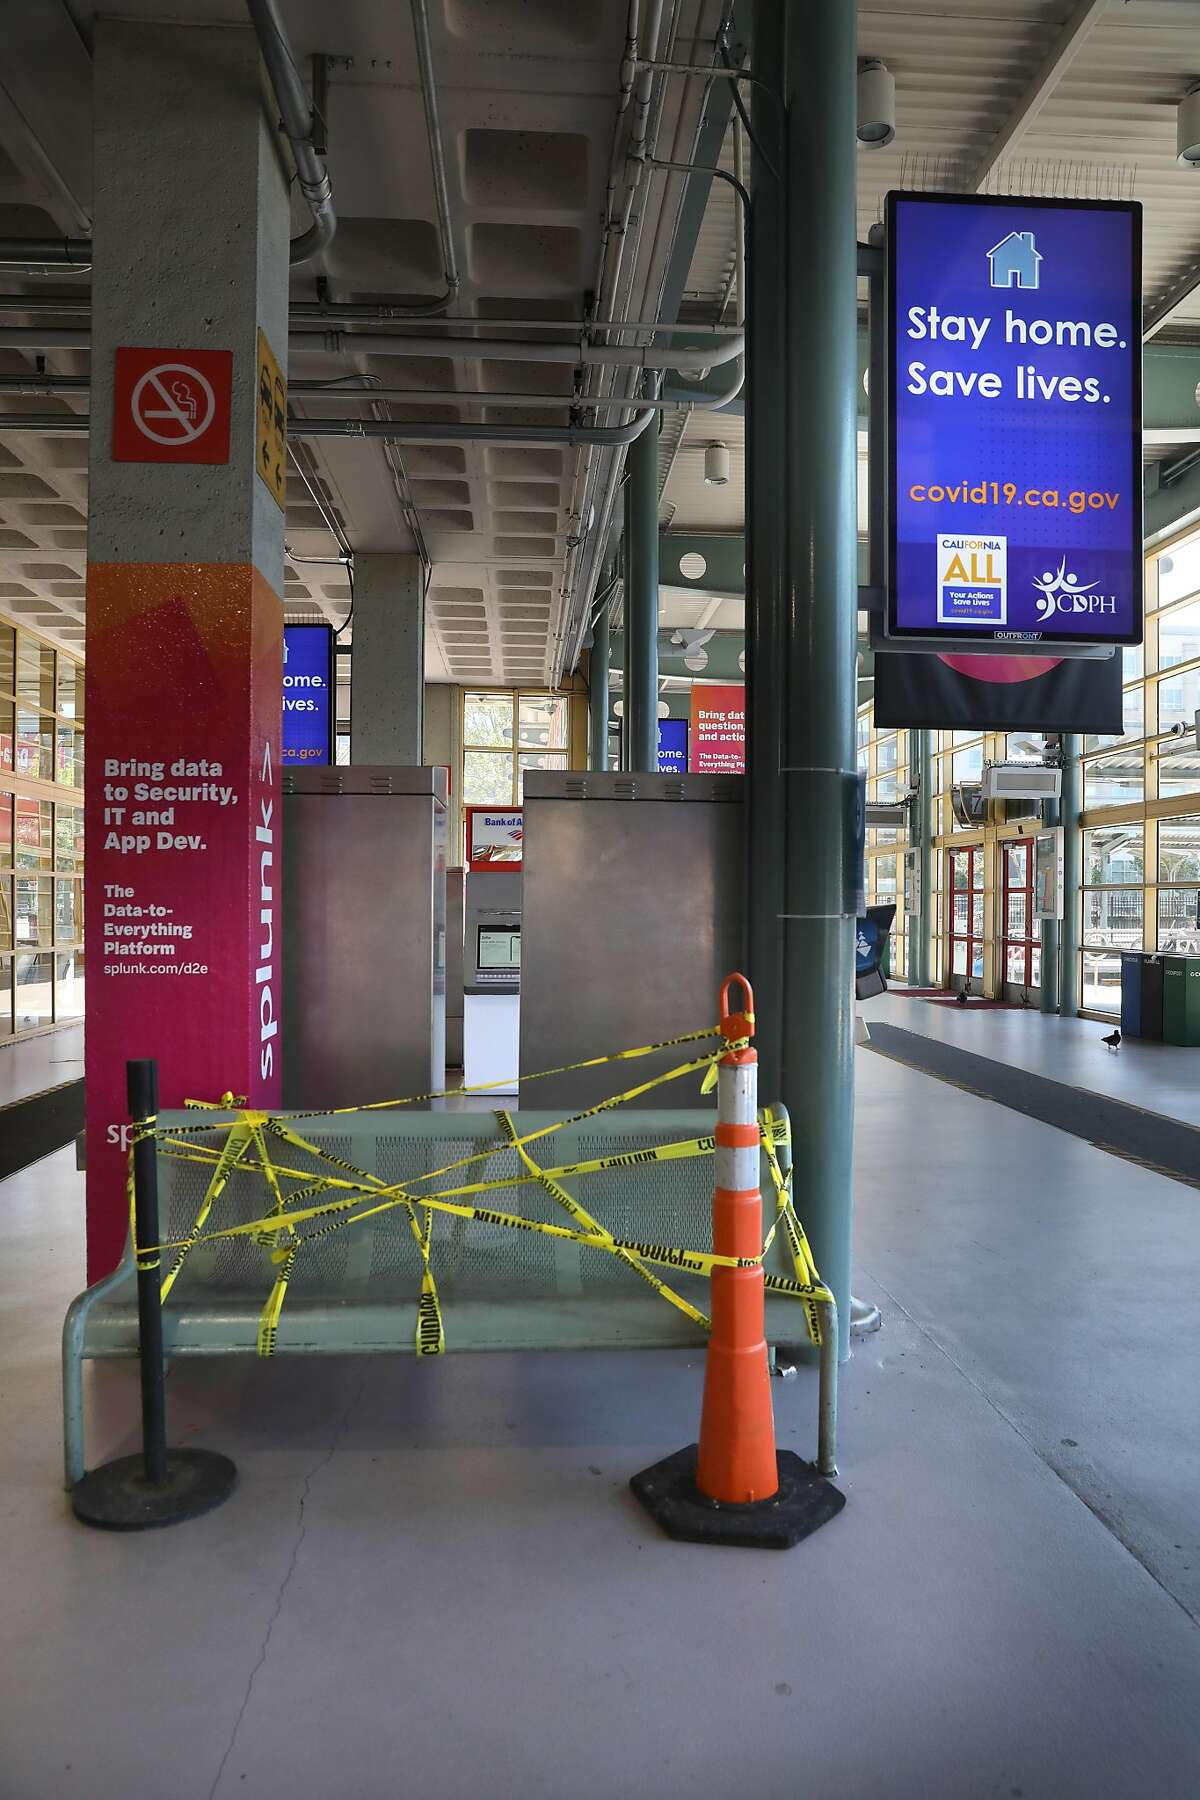 Public bench cordoned off seen at Caltrain Station at 4th and King Streets on Thursday, April 23, 2020, in San Francisco, Calif.